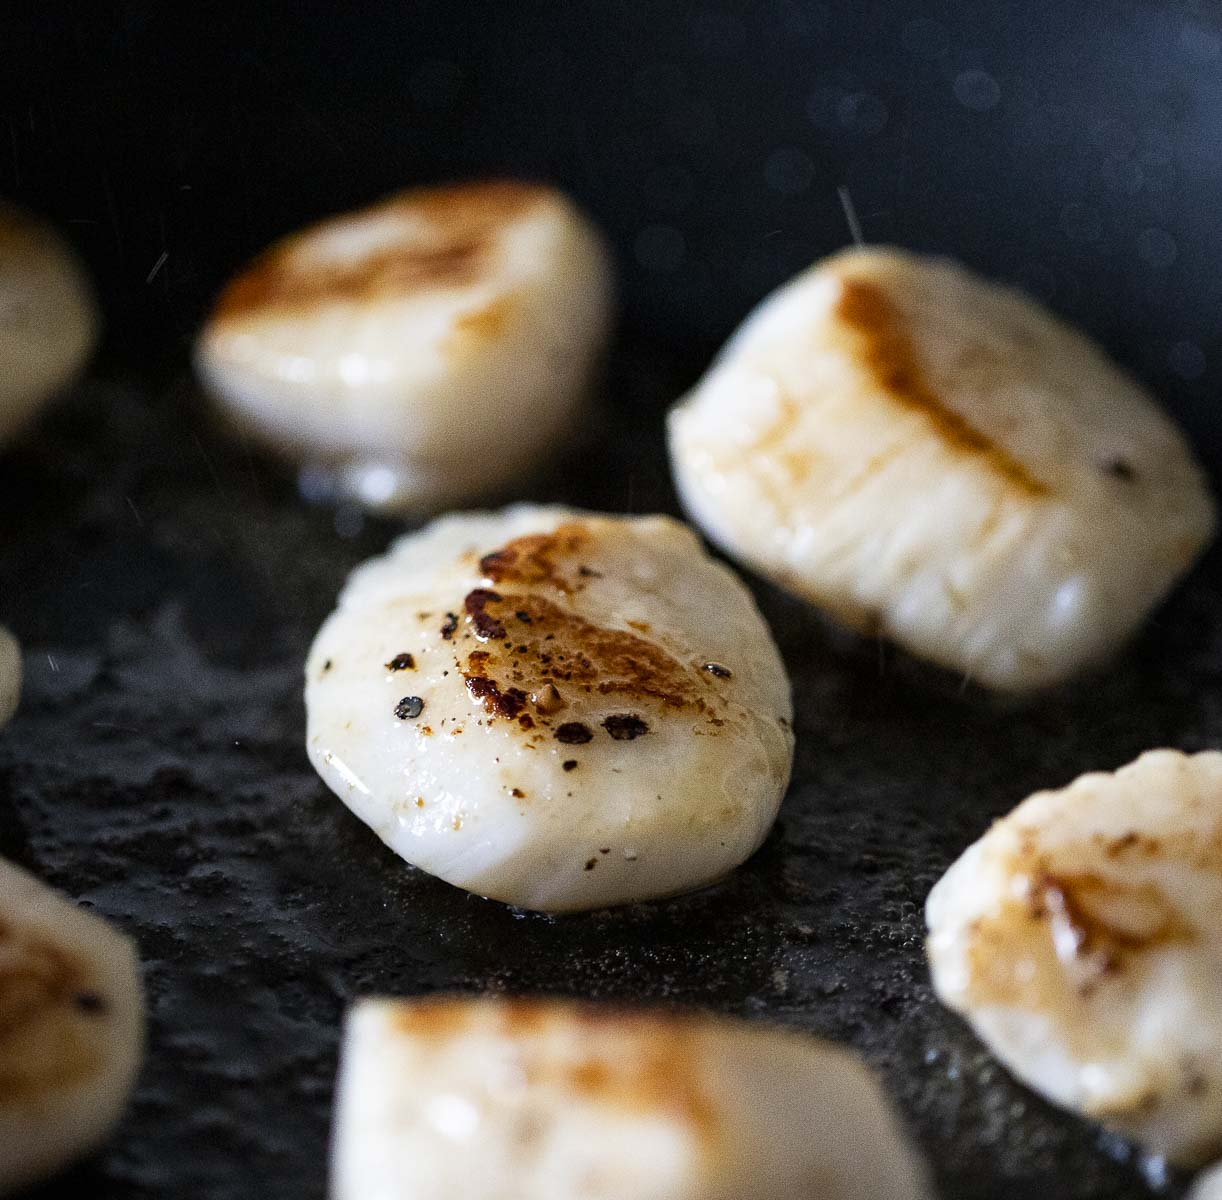 scallops being browned in a skillet